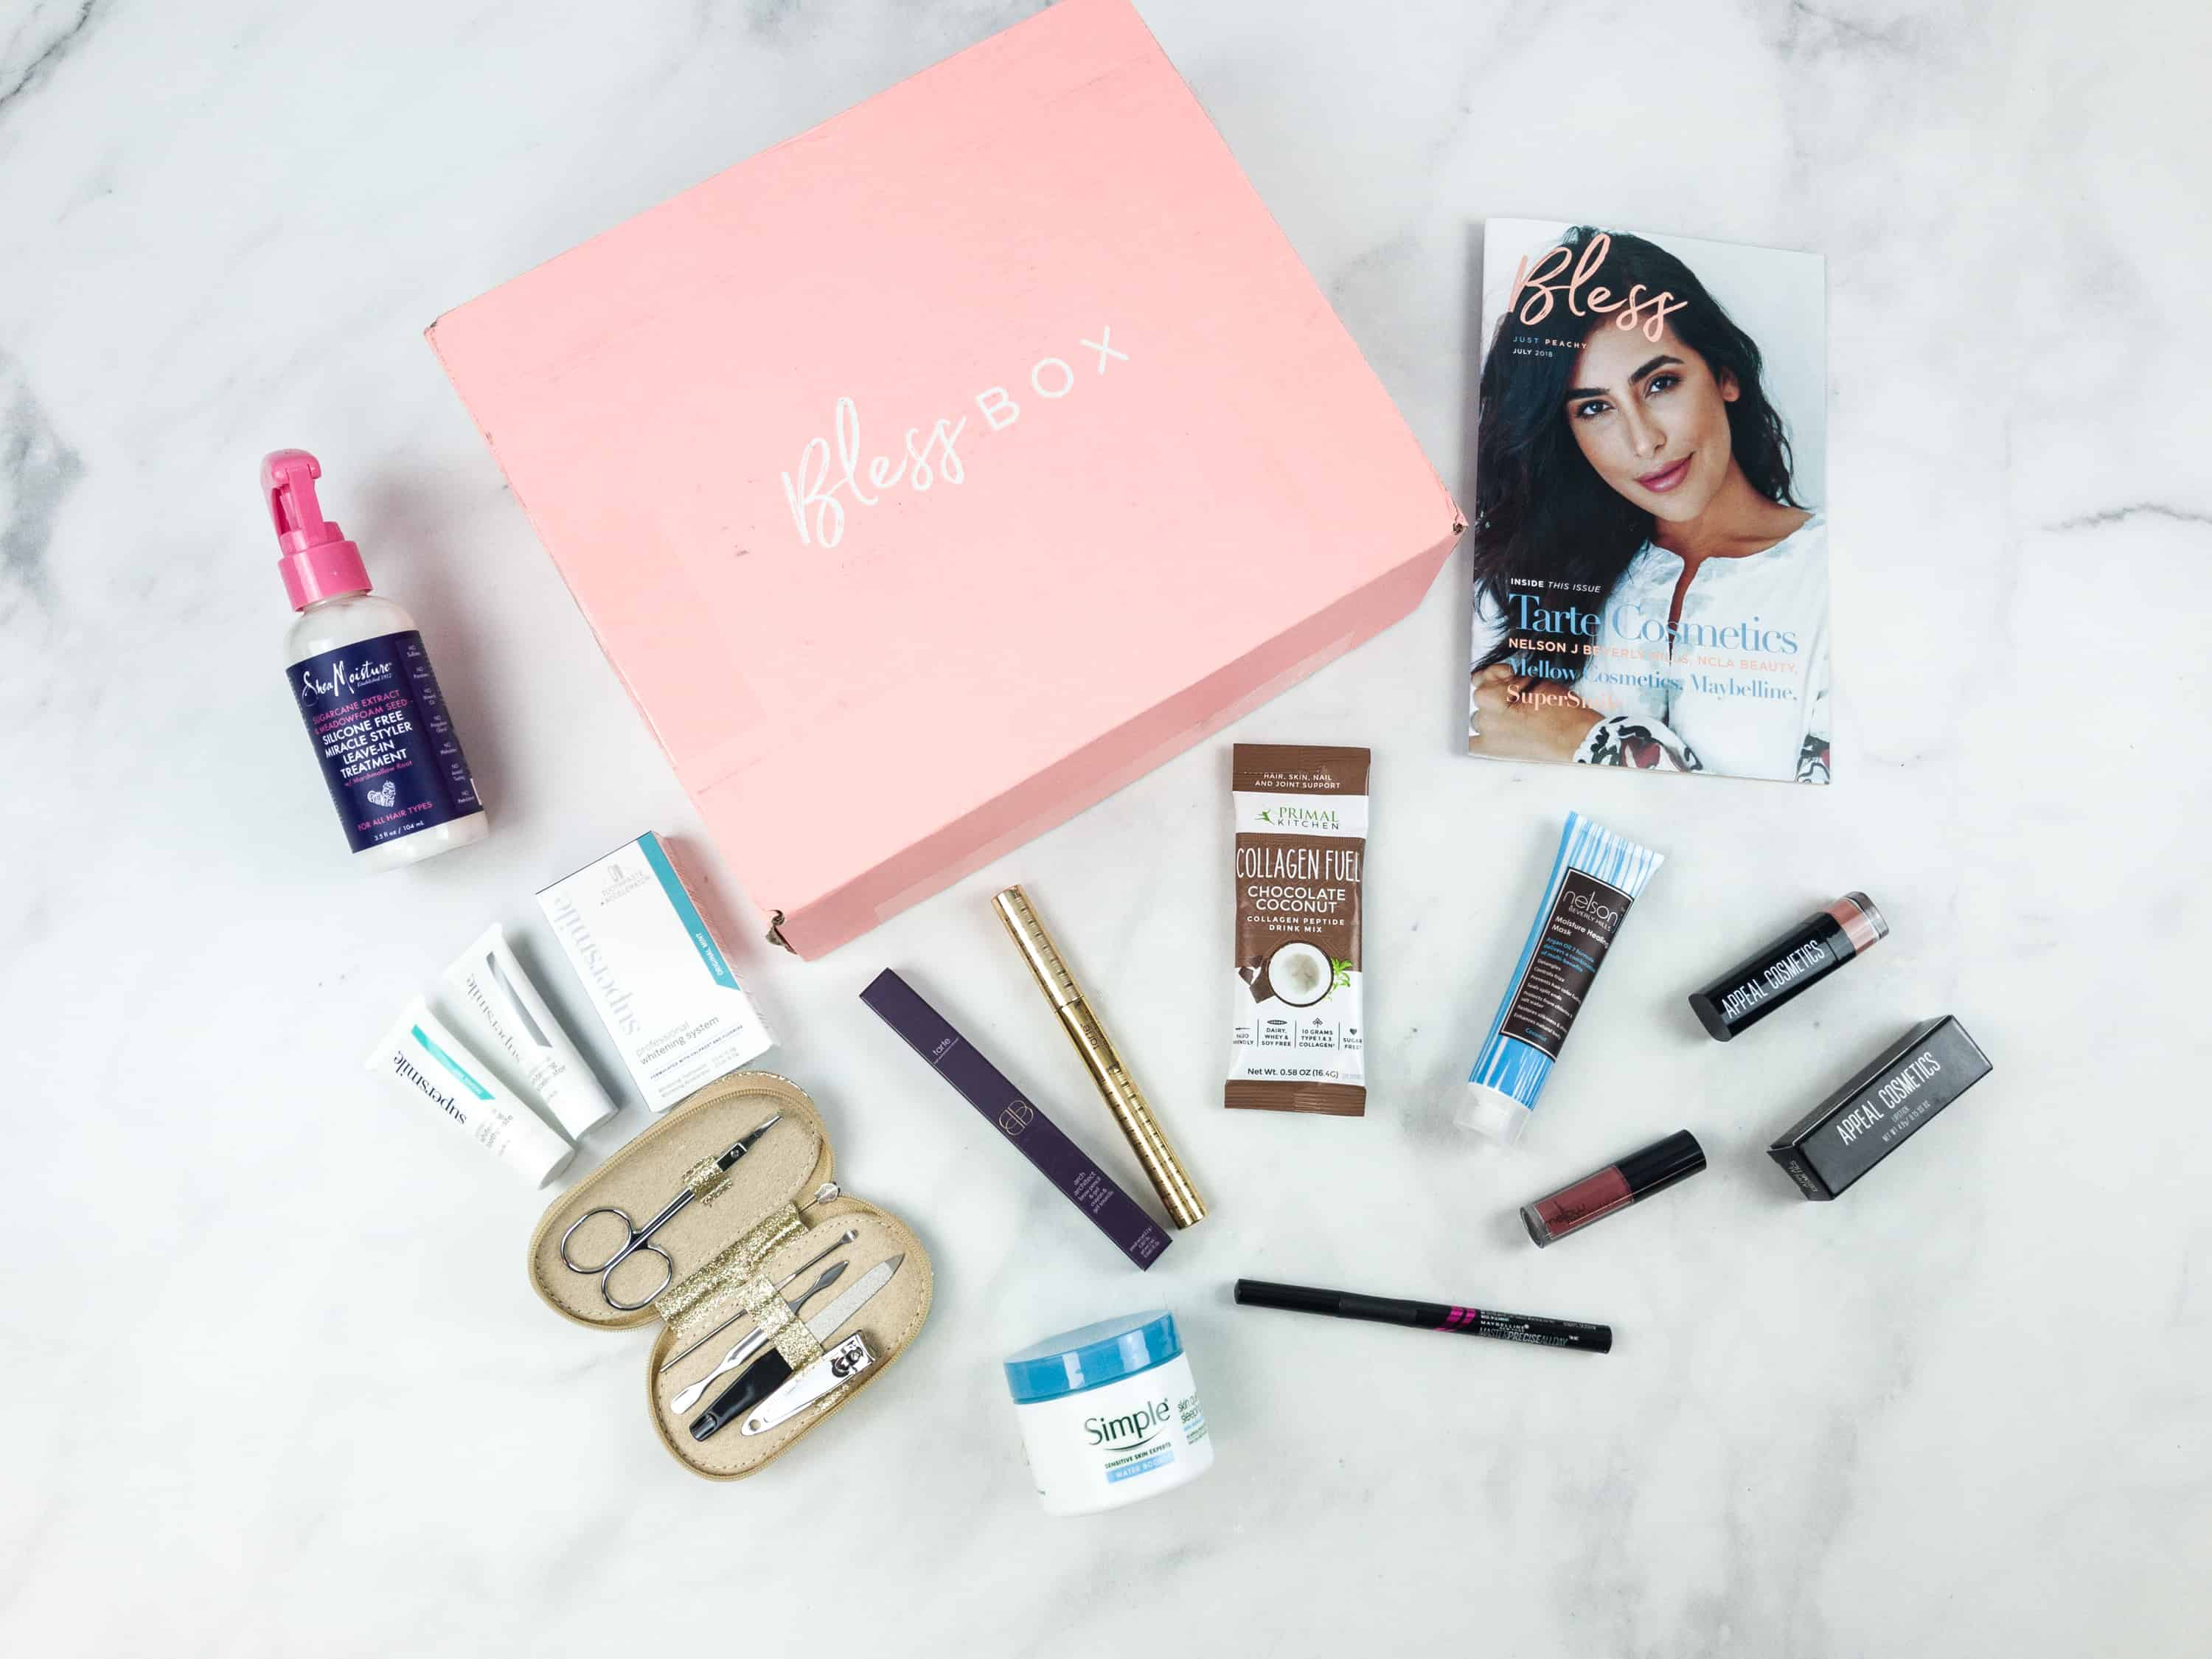 Bless Box July 2018 Subscription Box Review & Coupon